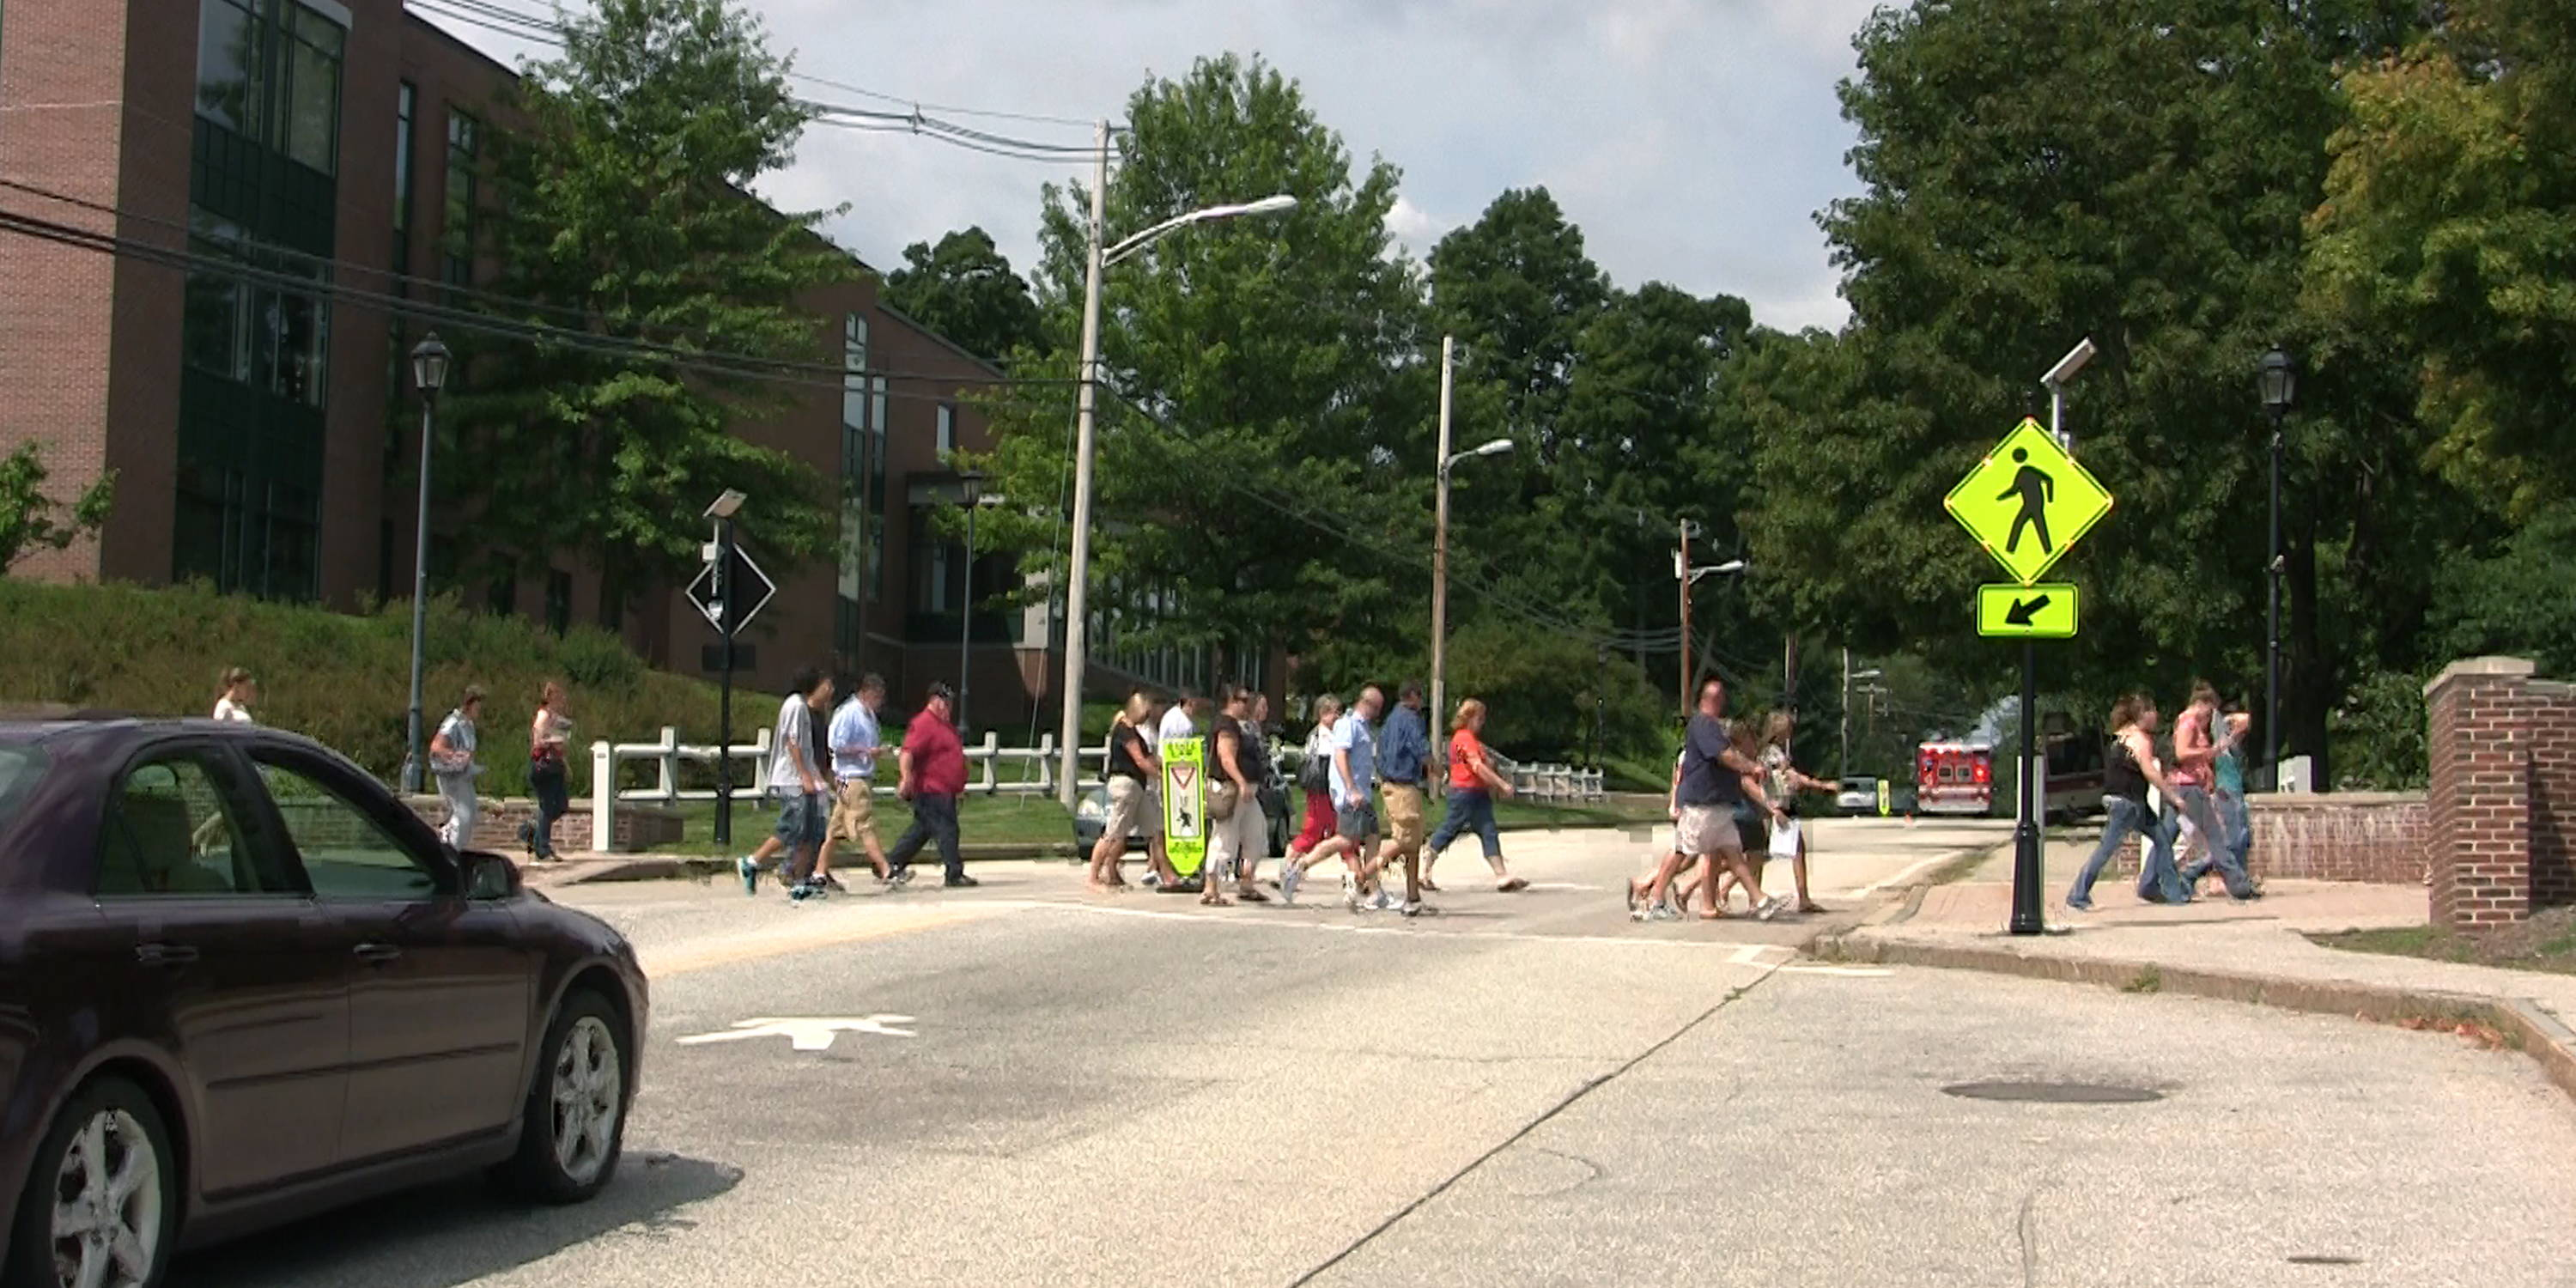 Busy intersection with several people crossing the street near a blinkersign.